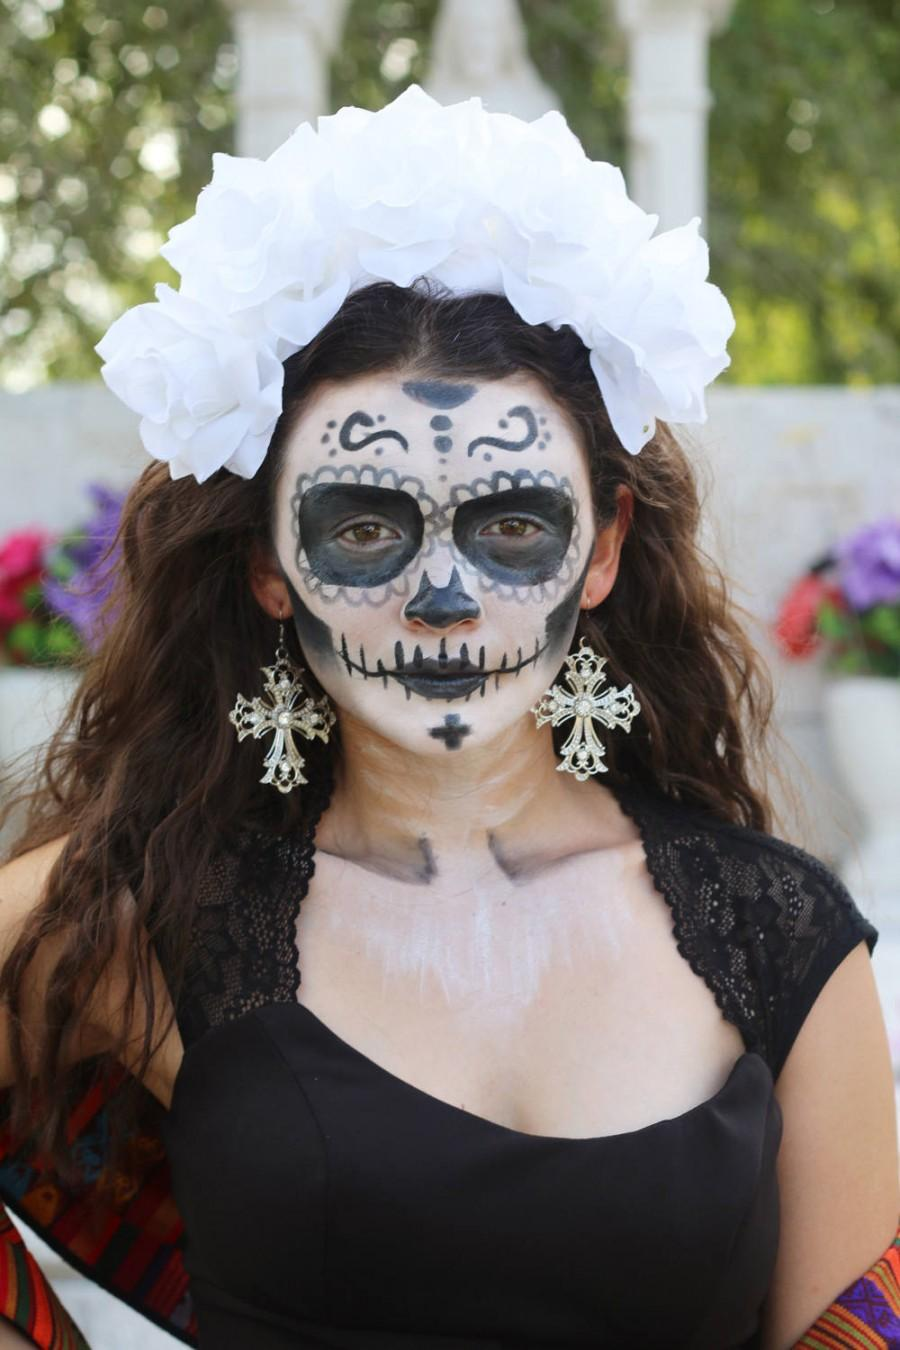 Wedding - White Flower Crown Headband (Halloween Costume Day of the Dead Headpiece Wreath Wedding Music Festival Floral Catrina Sugar Skull Mexican)